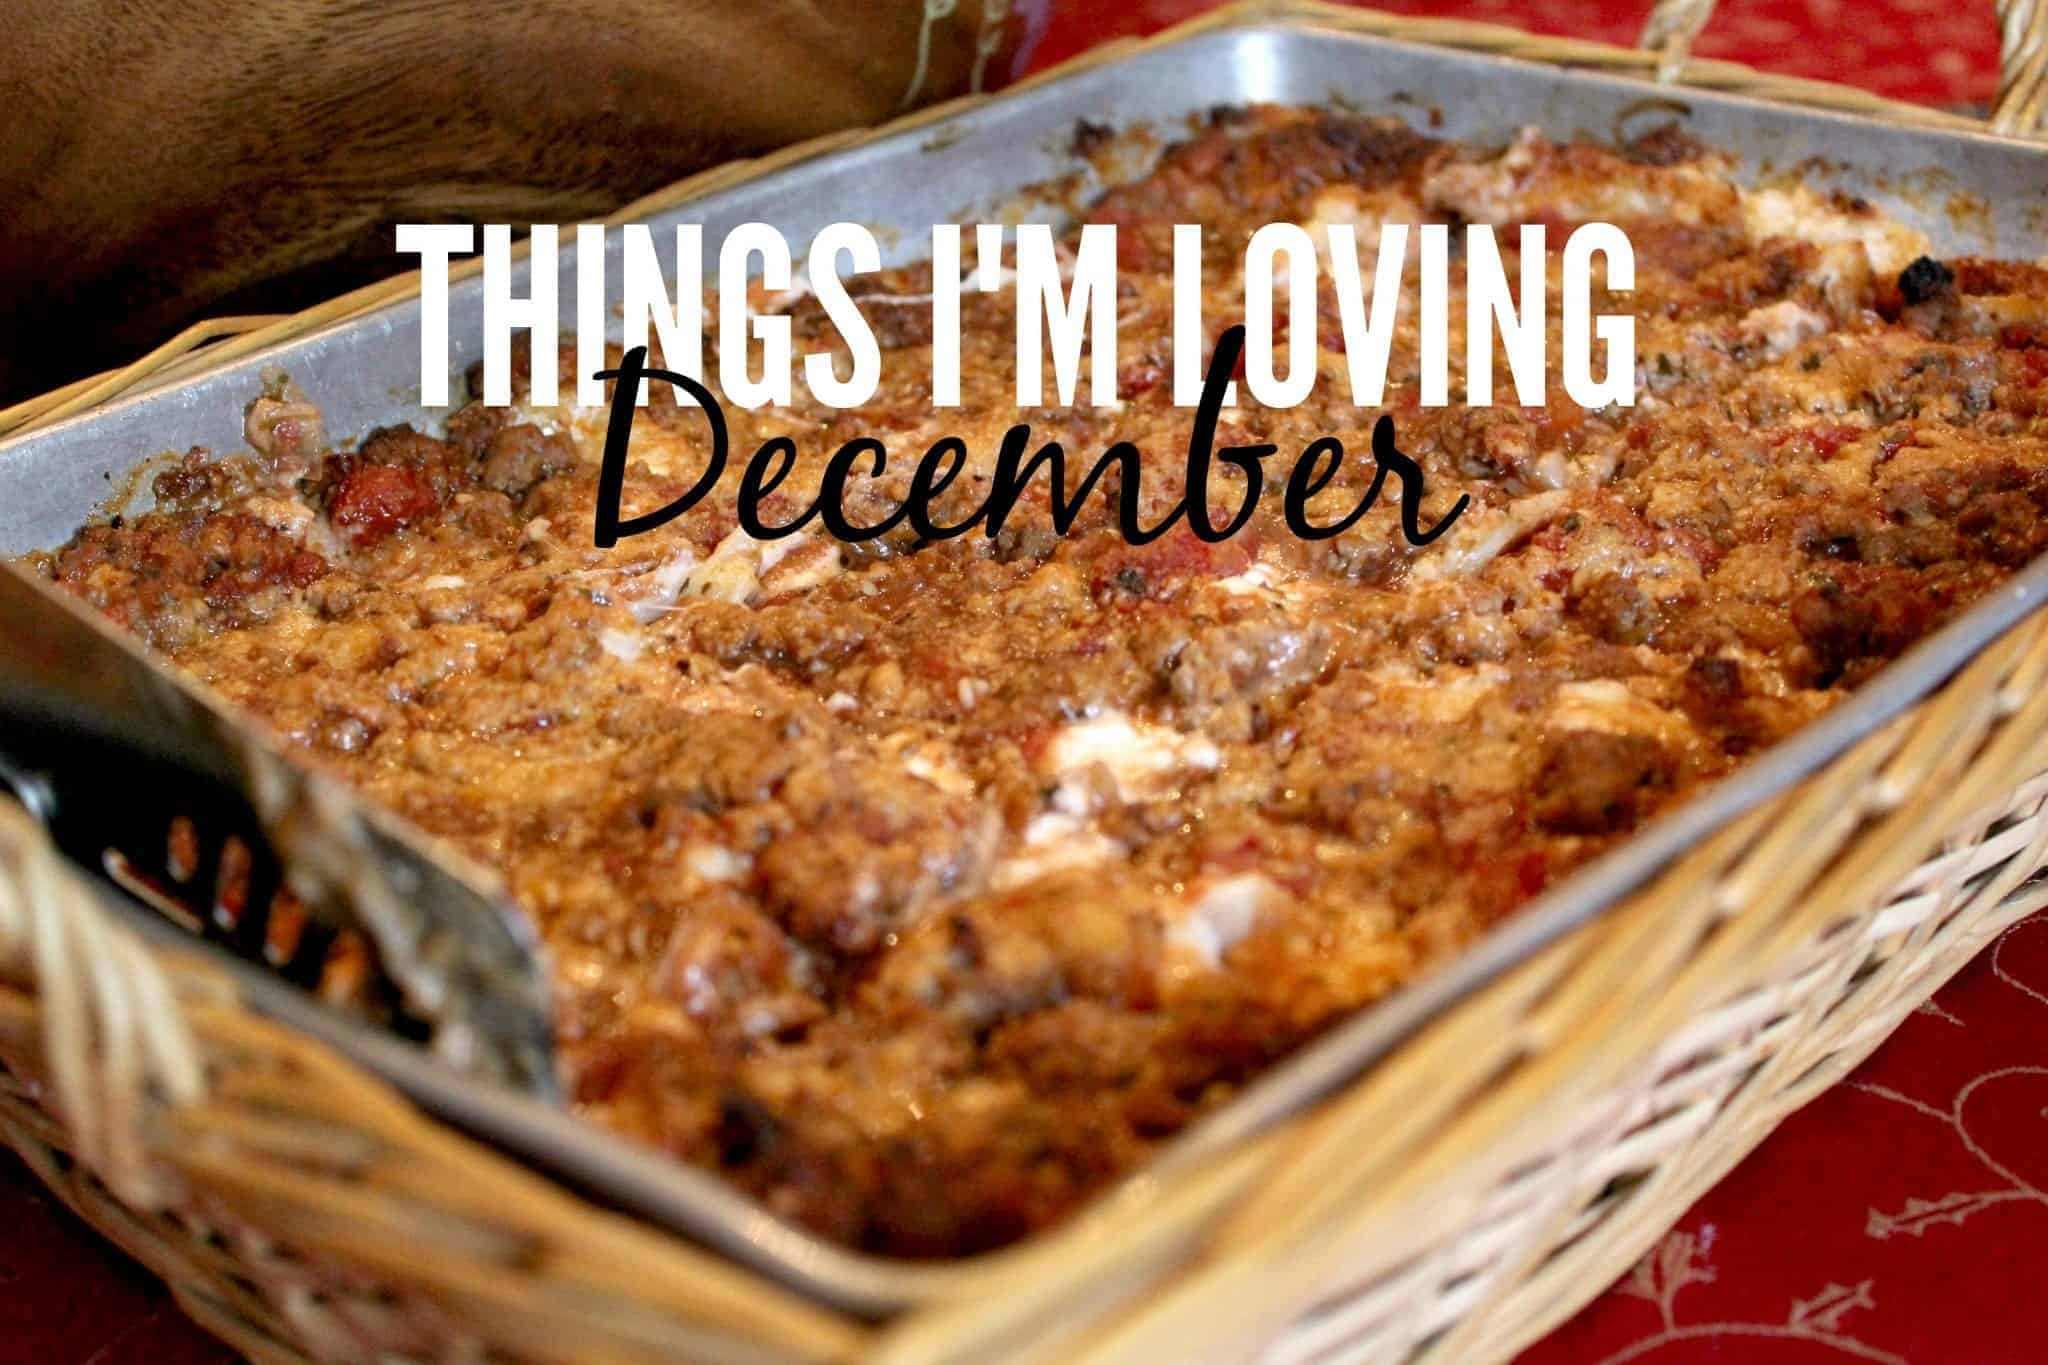 Things I'm Loving December 2015 from Treble in the Kitchen